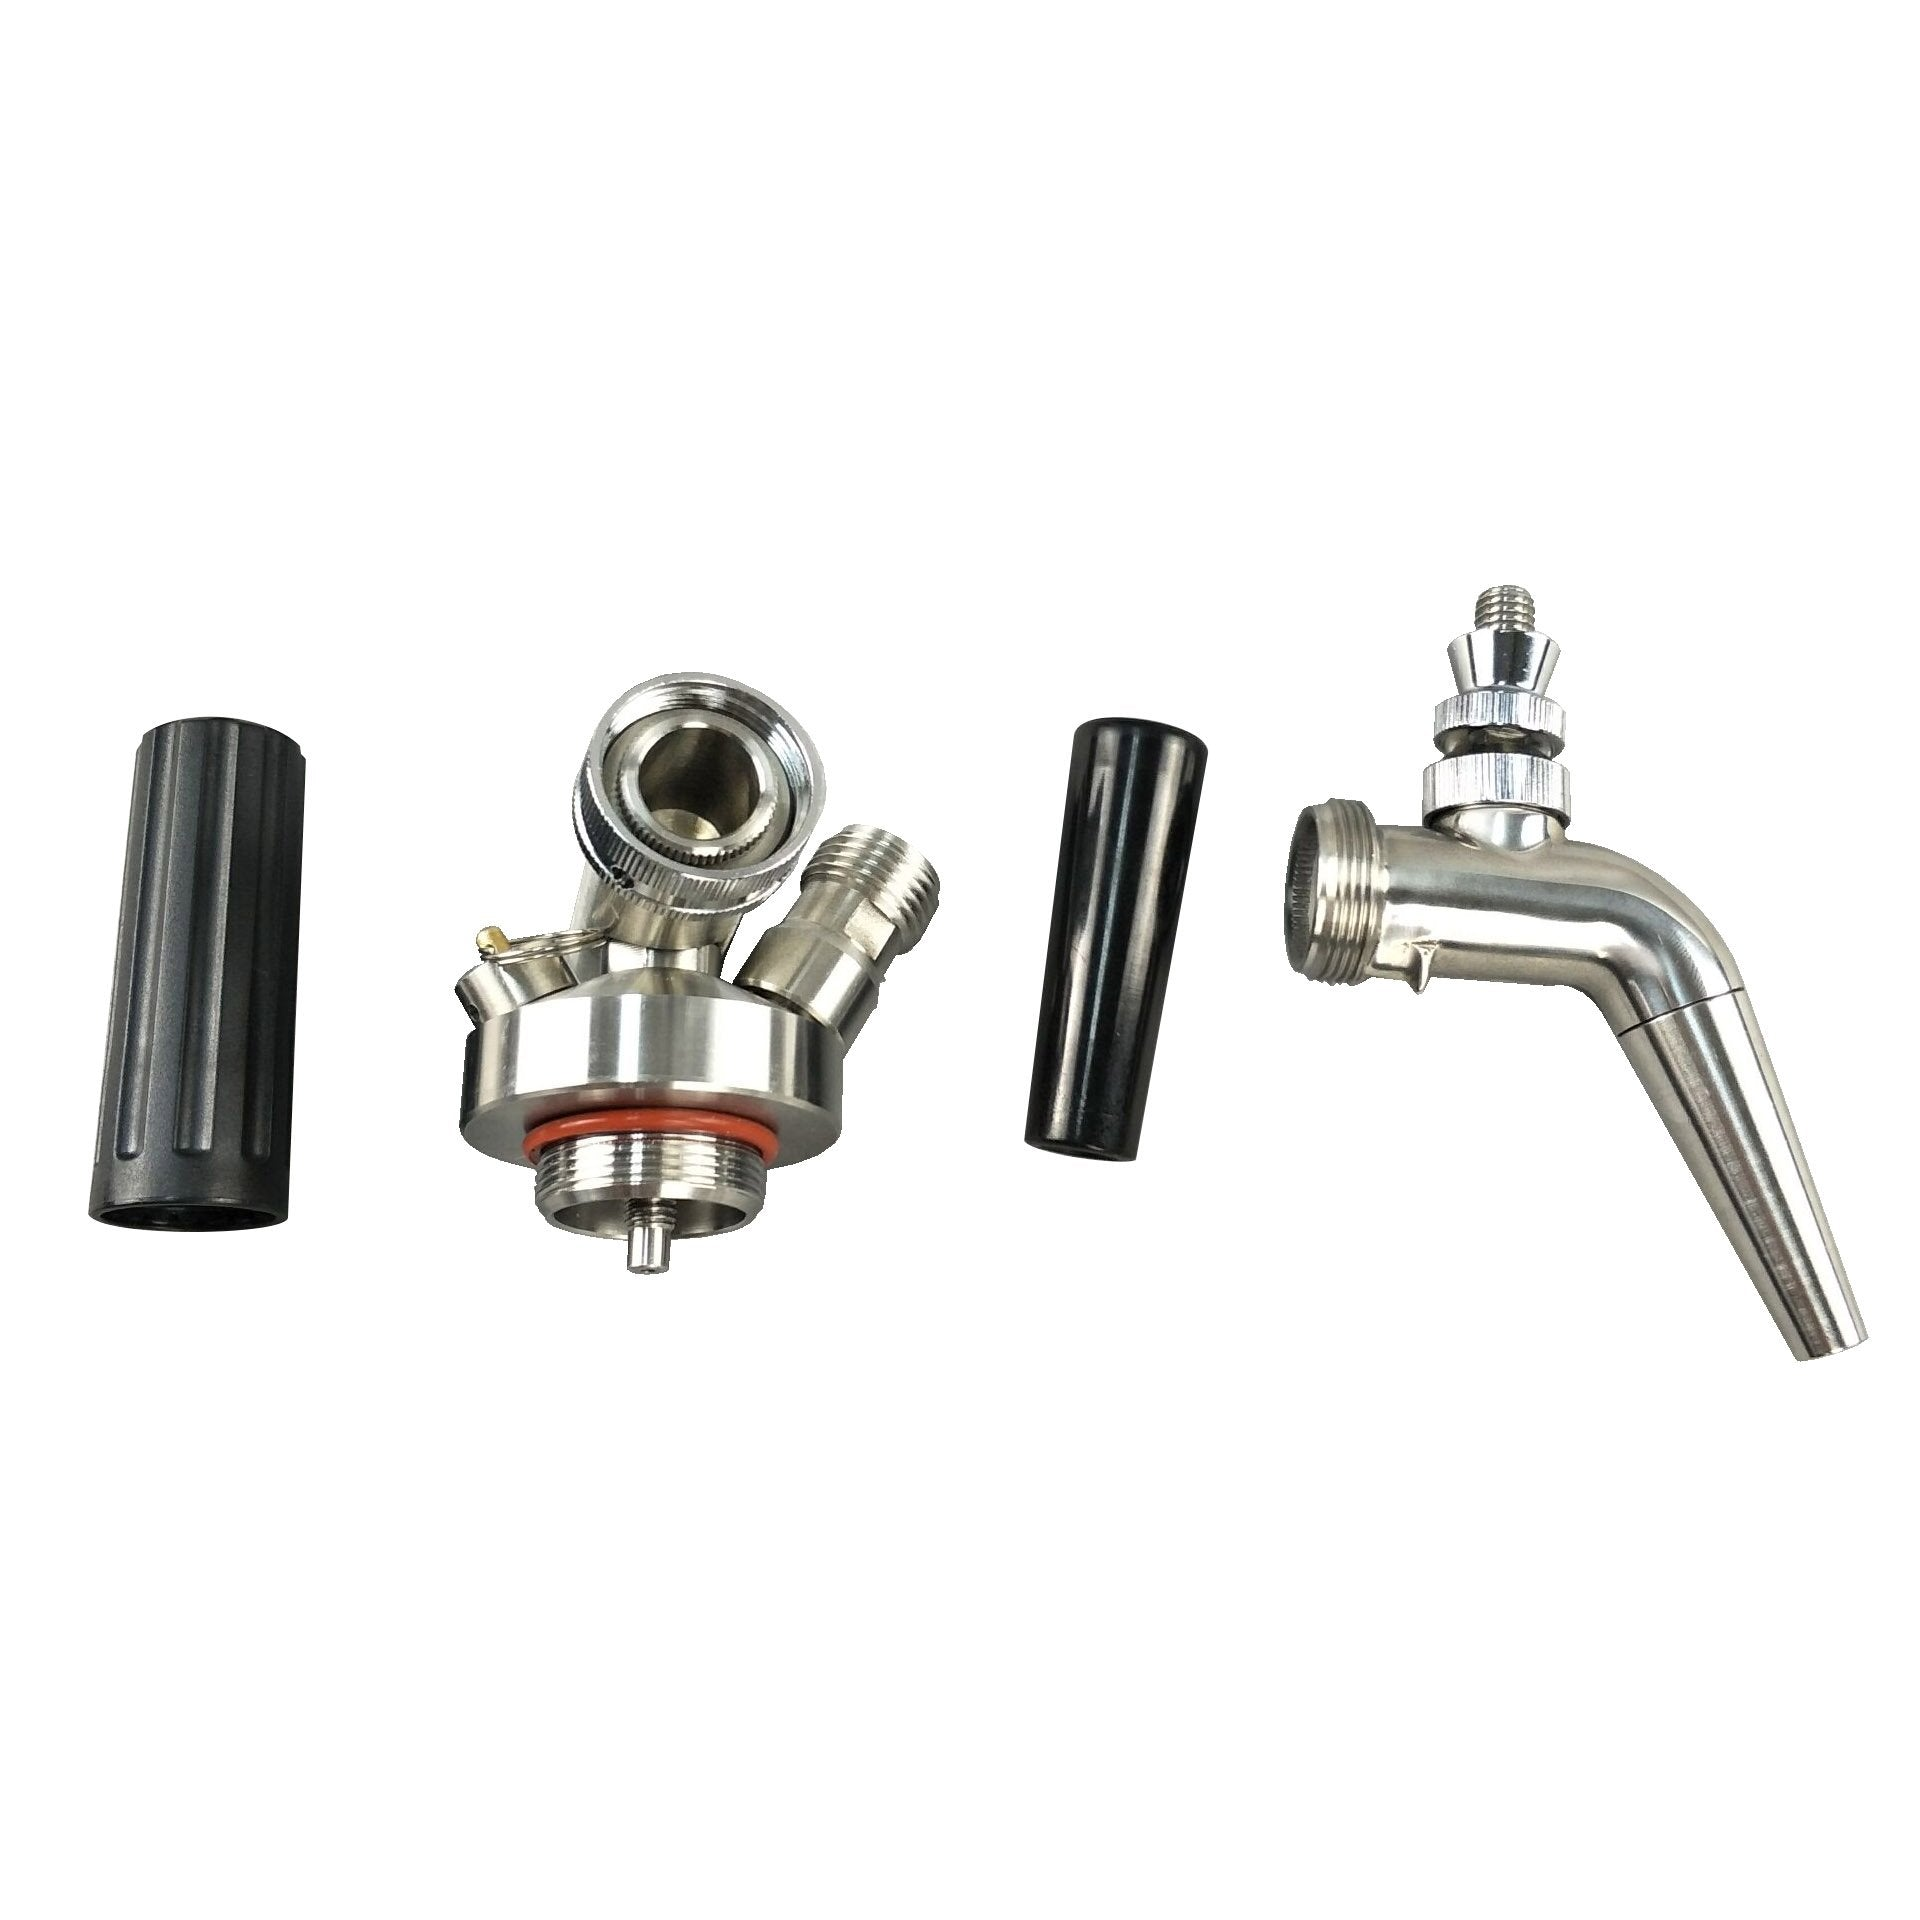 Nitrogen upgrade kit with creamer faucet - Keg Smiths - Premium Draft Kegs & Accessories